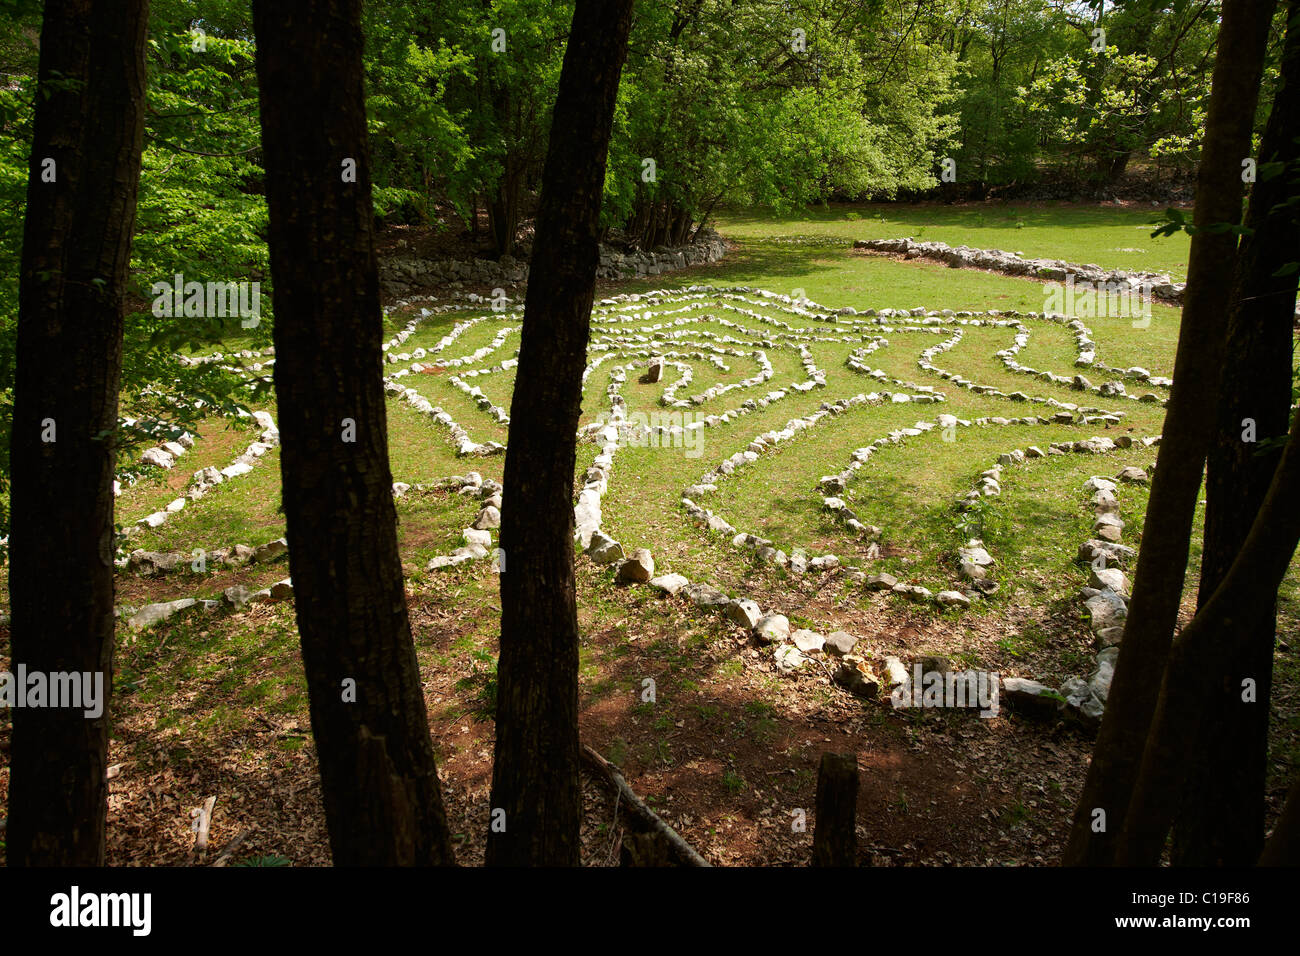 Isis's Labyrinth in the Tramuntana Forest, Cres Island Croatia - Stock Image